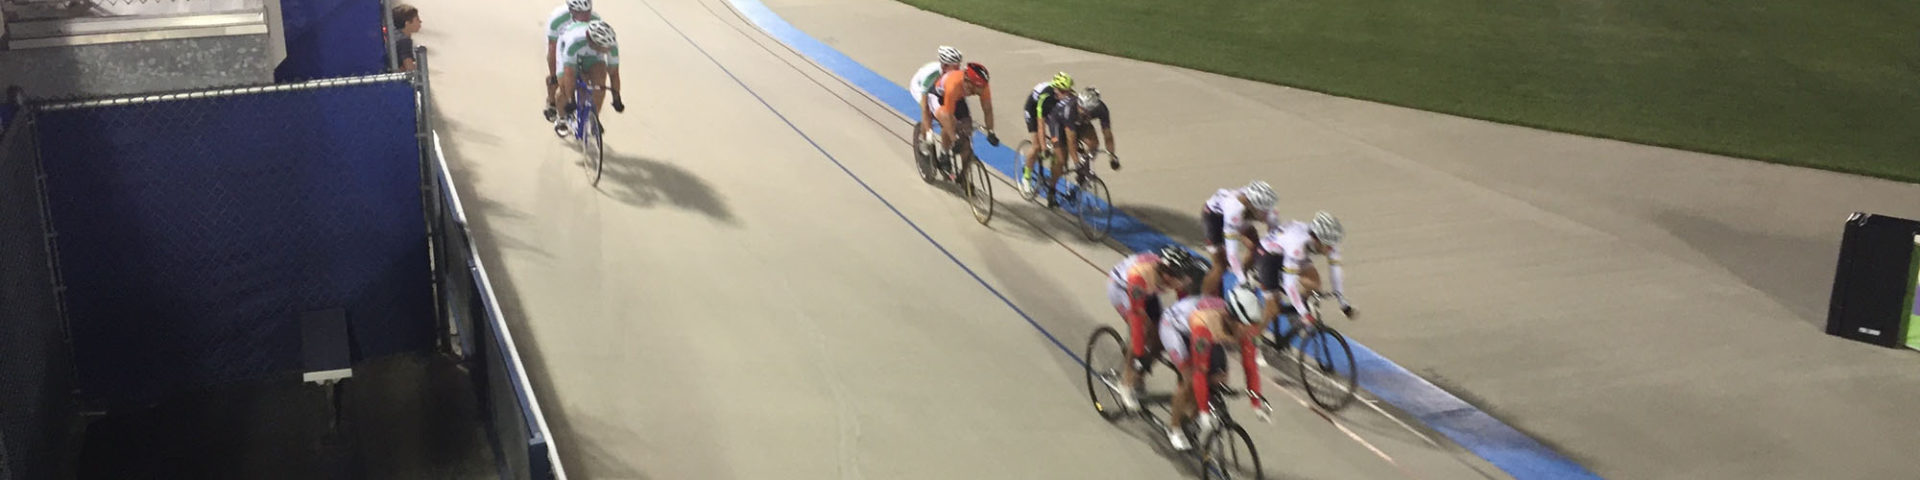 Cyclists race tandem bikes on an our door track.